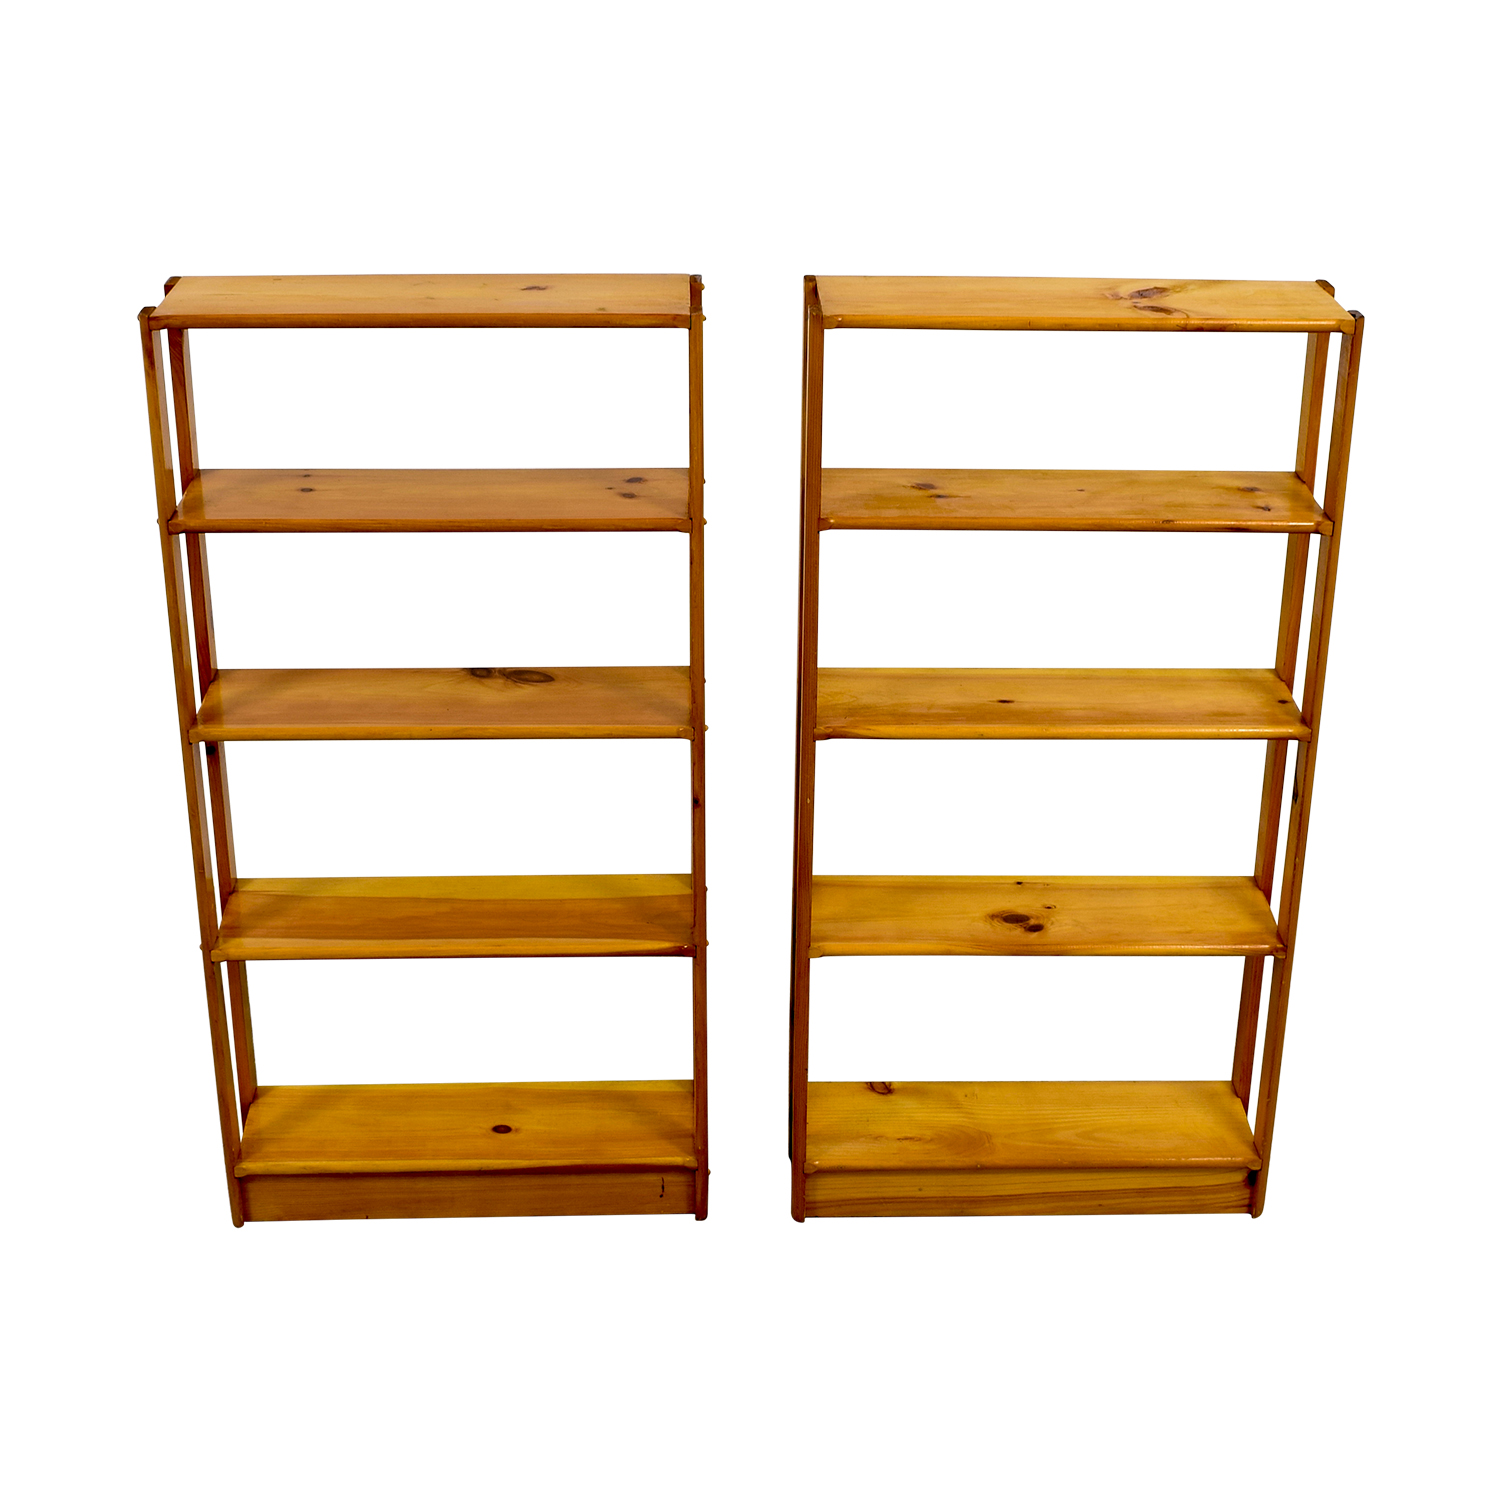 buy Slim Light Brown Wooden Bookshelves Storage